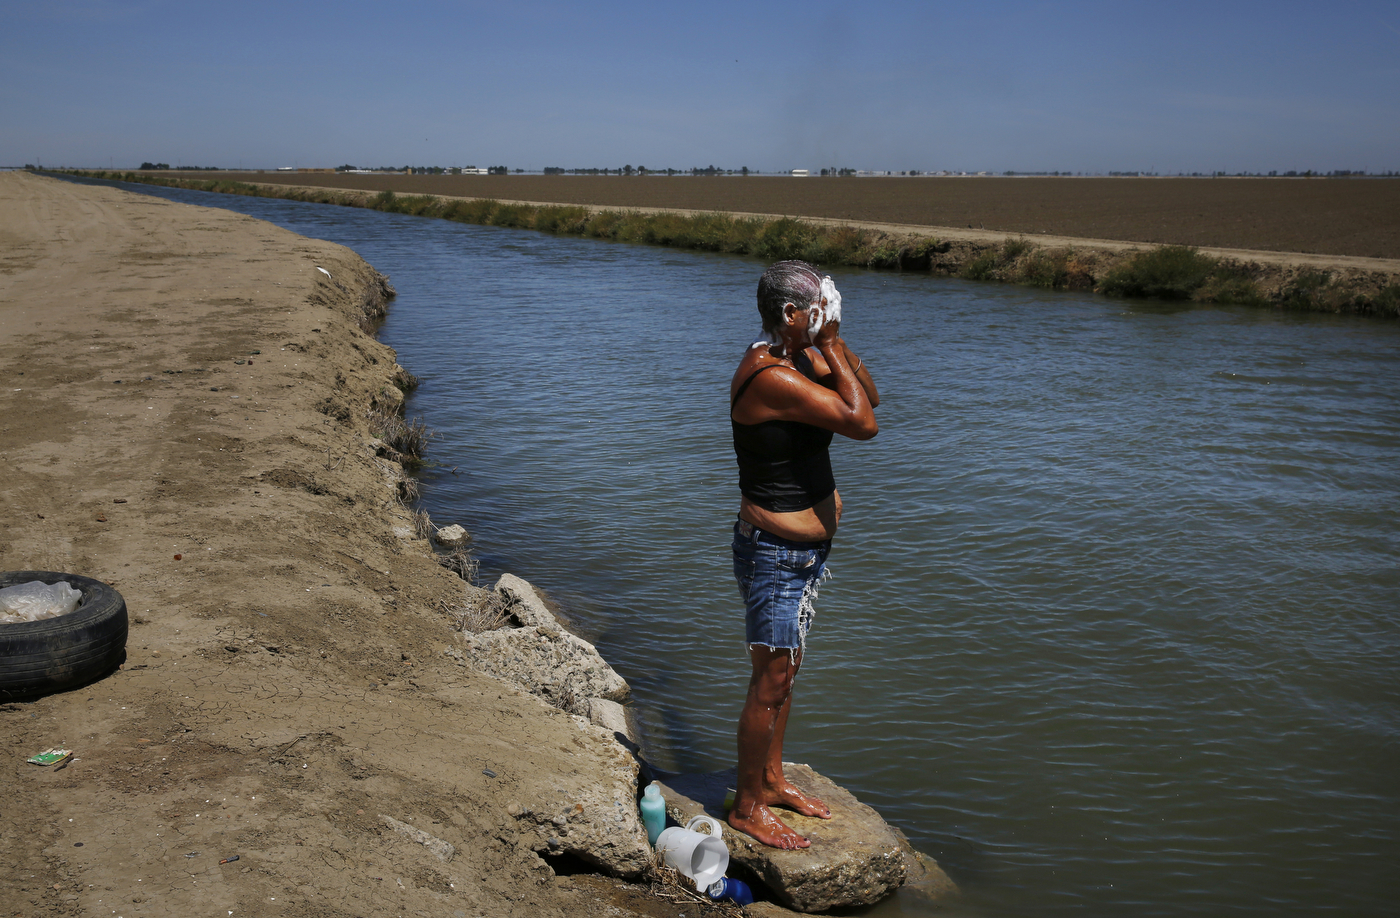 Sandoval washes her face and hair in the nearby irrigation canal. The canal is the only source of water for the shantytown residents if they want to bathe, cool down, or wash their clothing. They have to buy water from a nearby store in town for drinking and cooking.